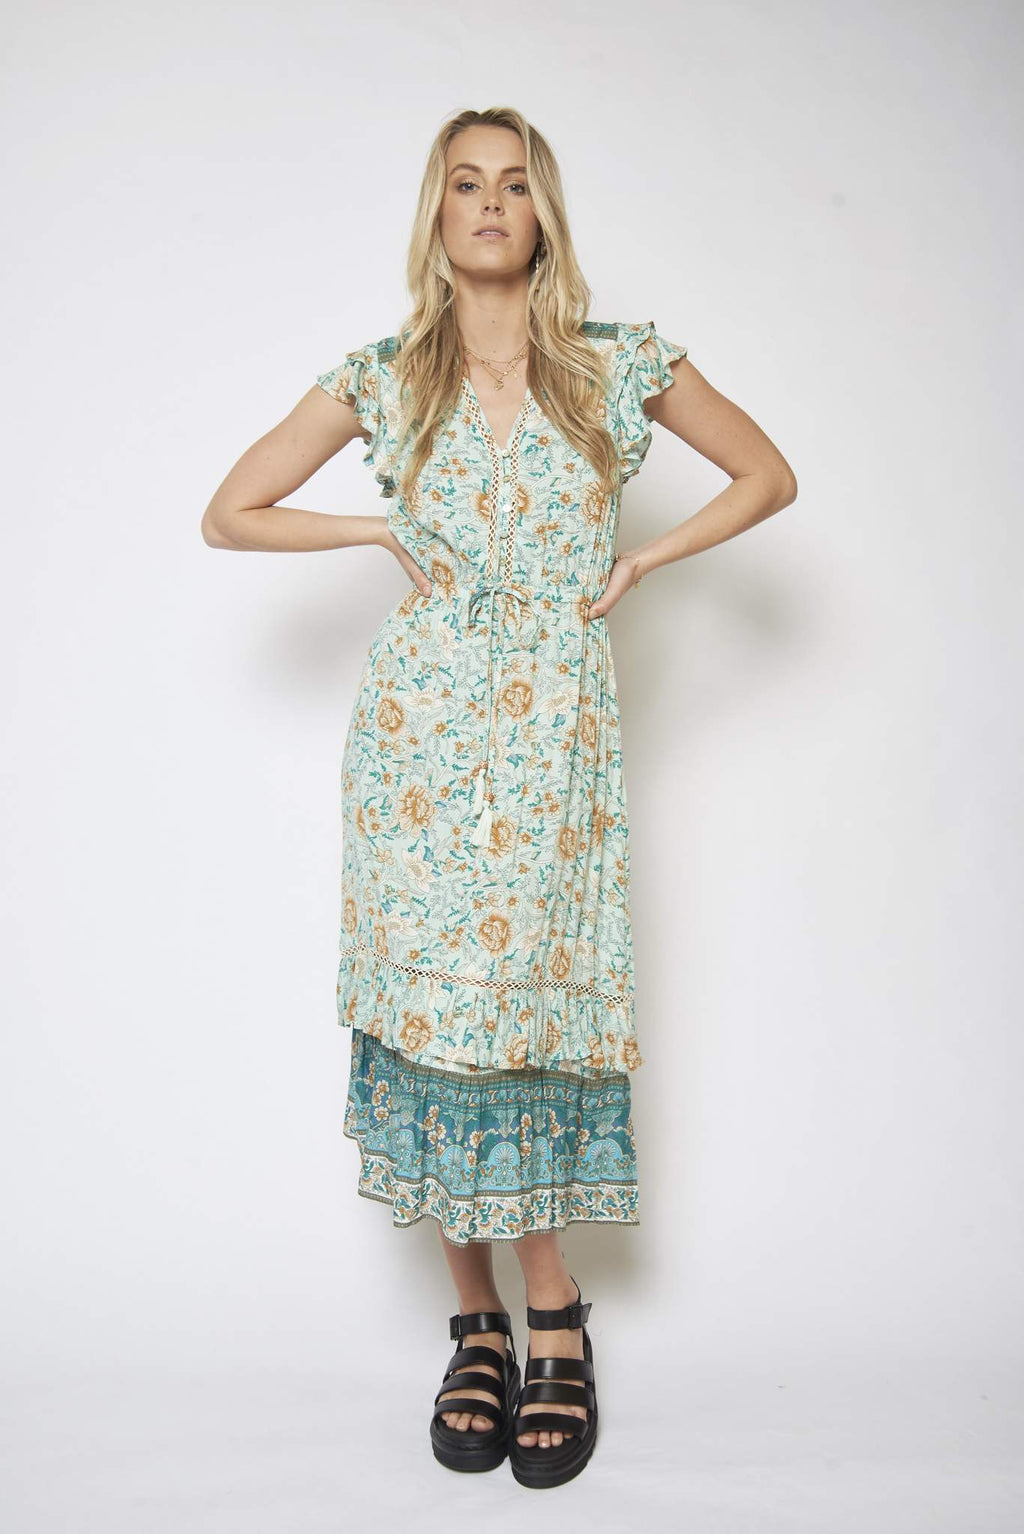 August boho maxi dress in minty ocean floral print